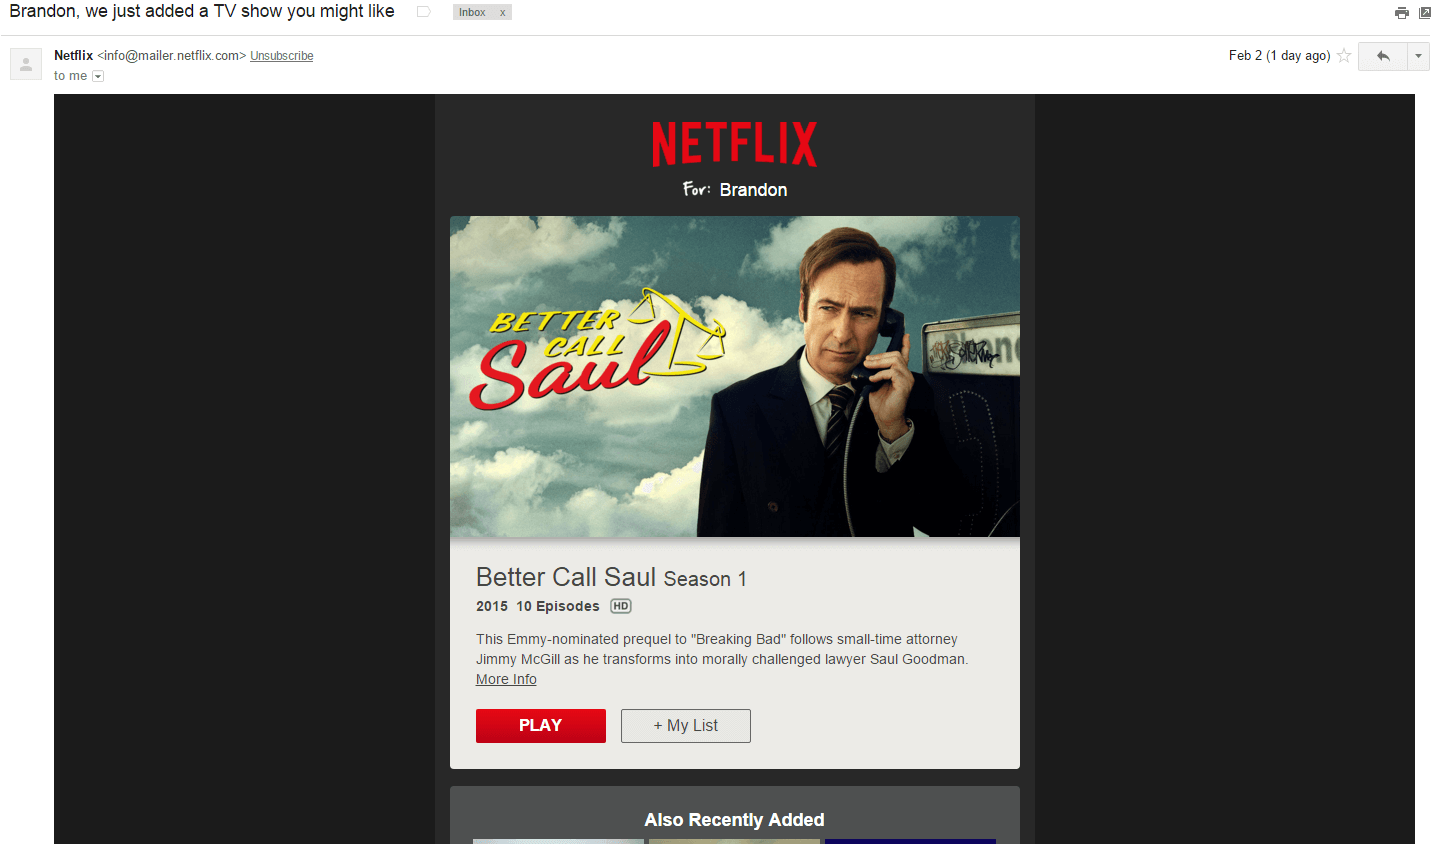 netflix email campaign